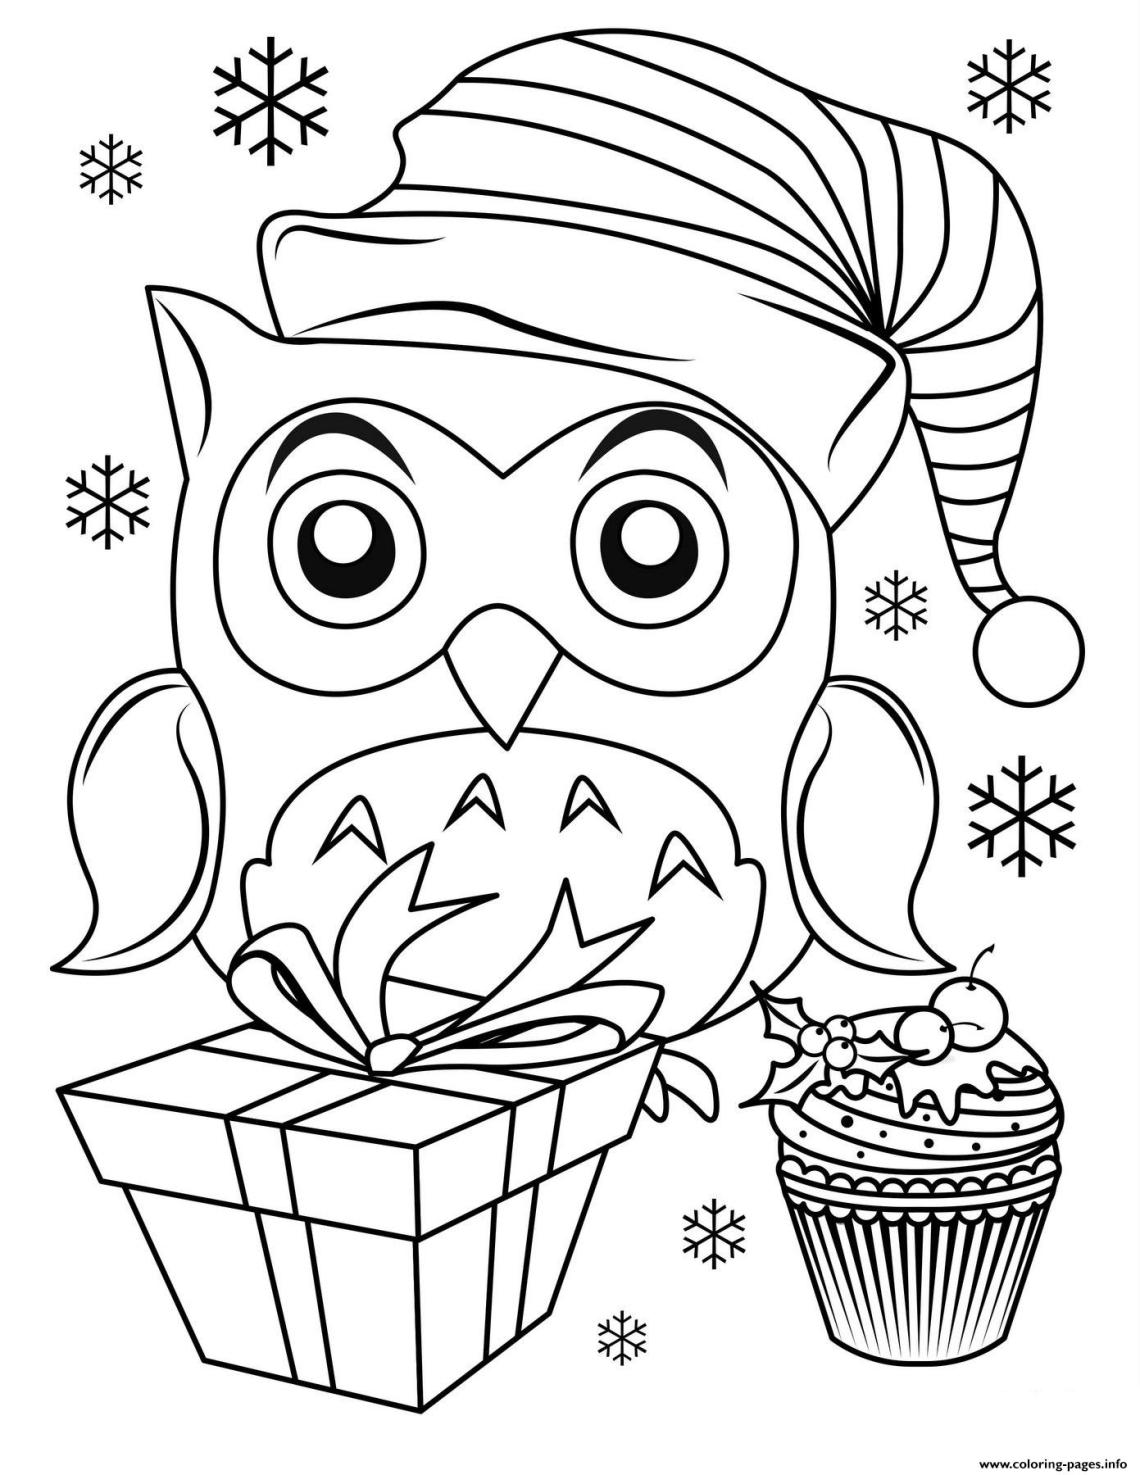 Cute Christmas Owl Coloring Pages Printable | christmas colouring pages